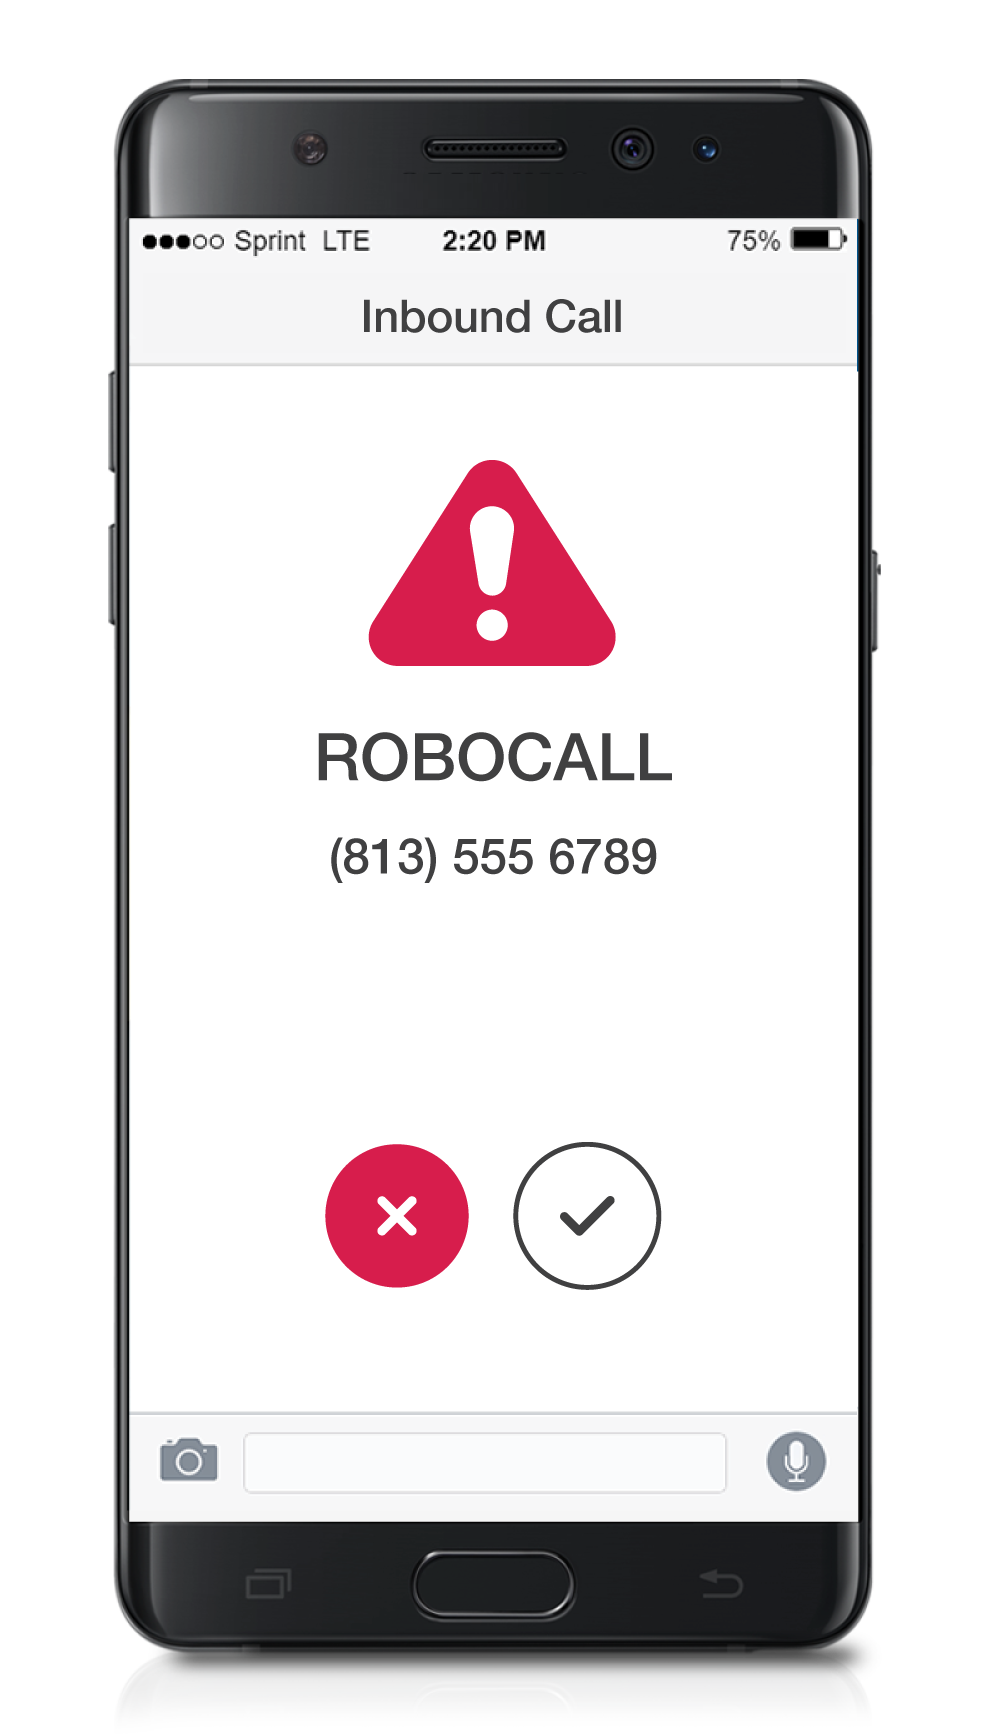 Robocall Image on a Mobile Device